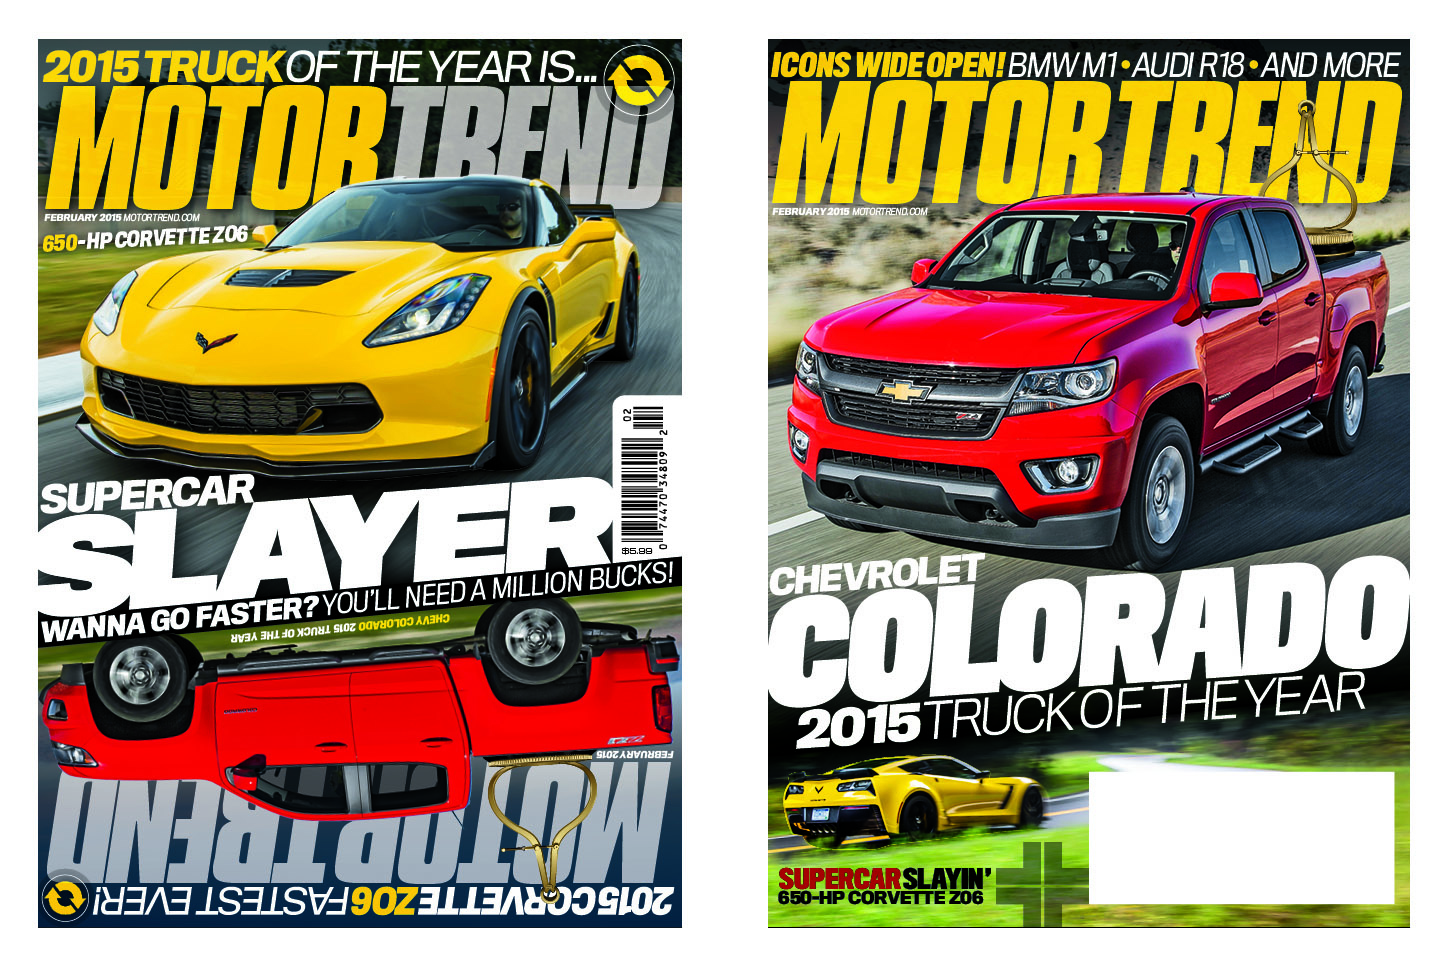 Chevy Colorado 2015 Motor Trend Truck Of The Year The